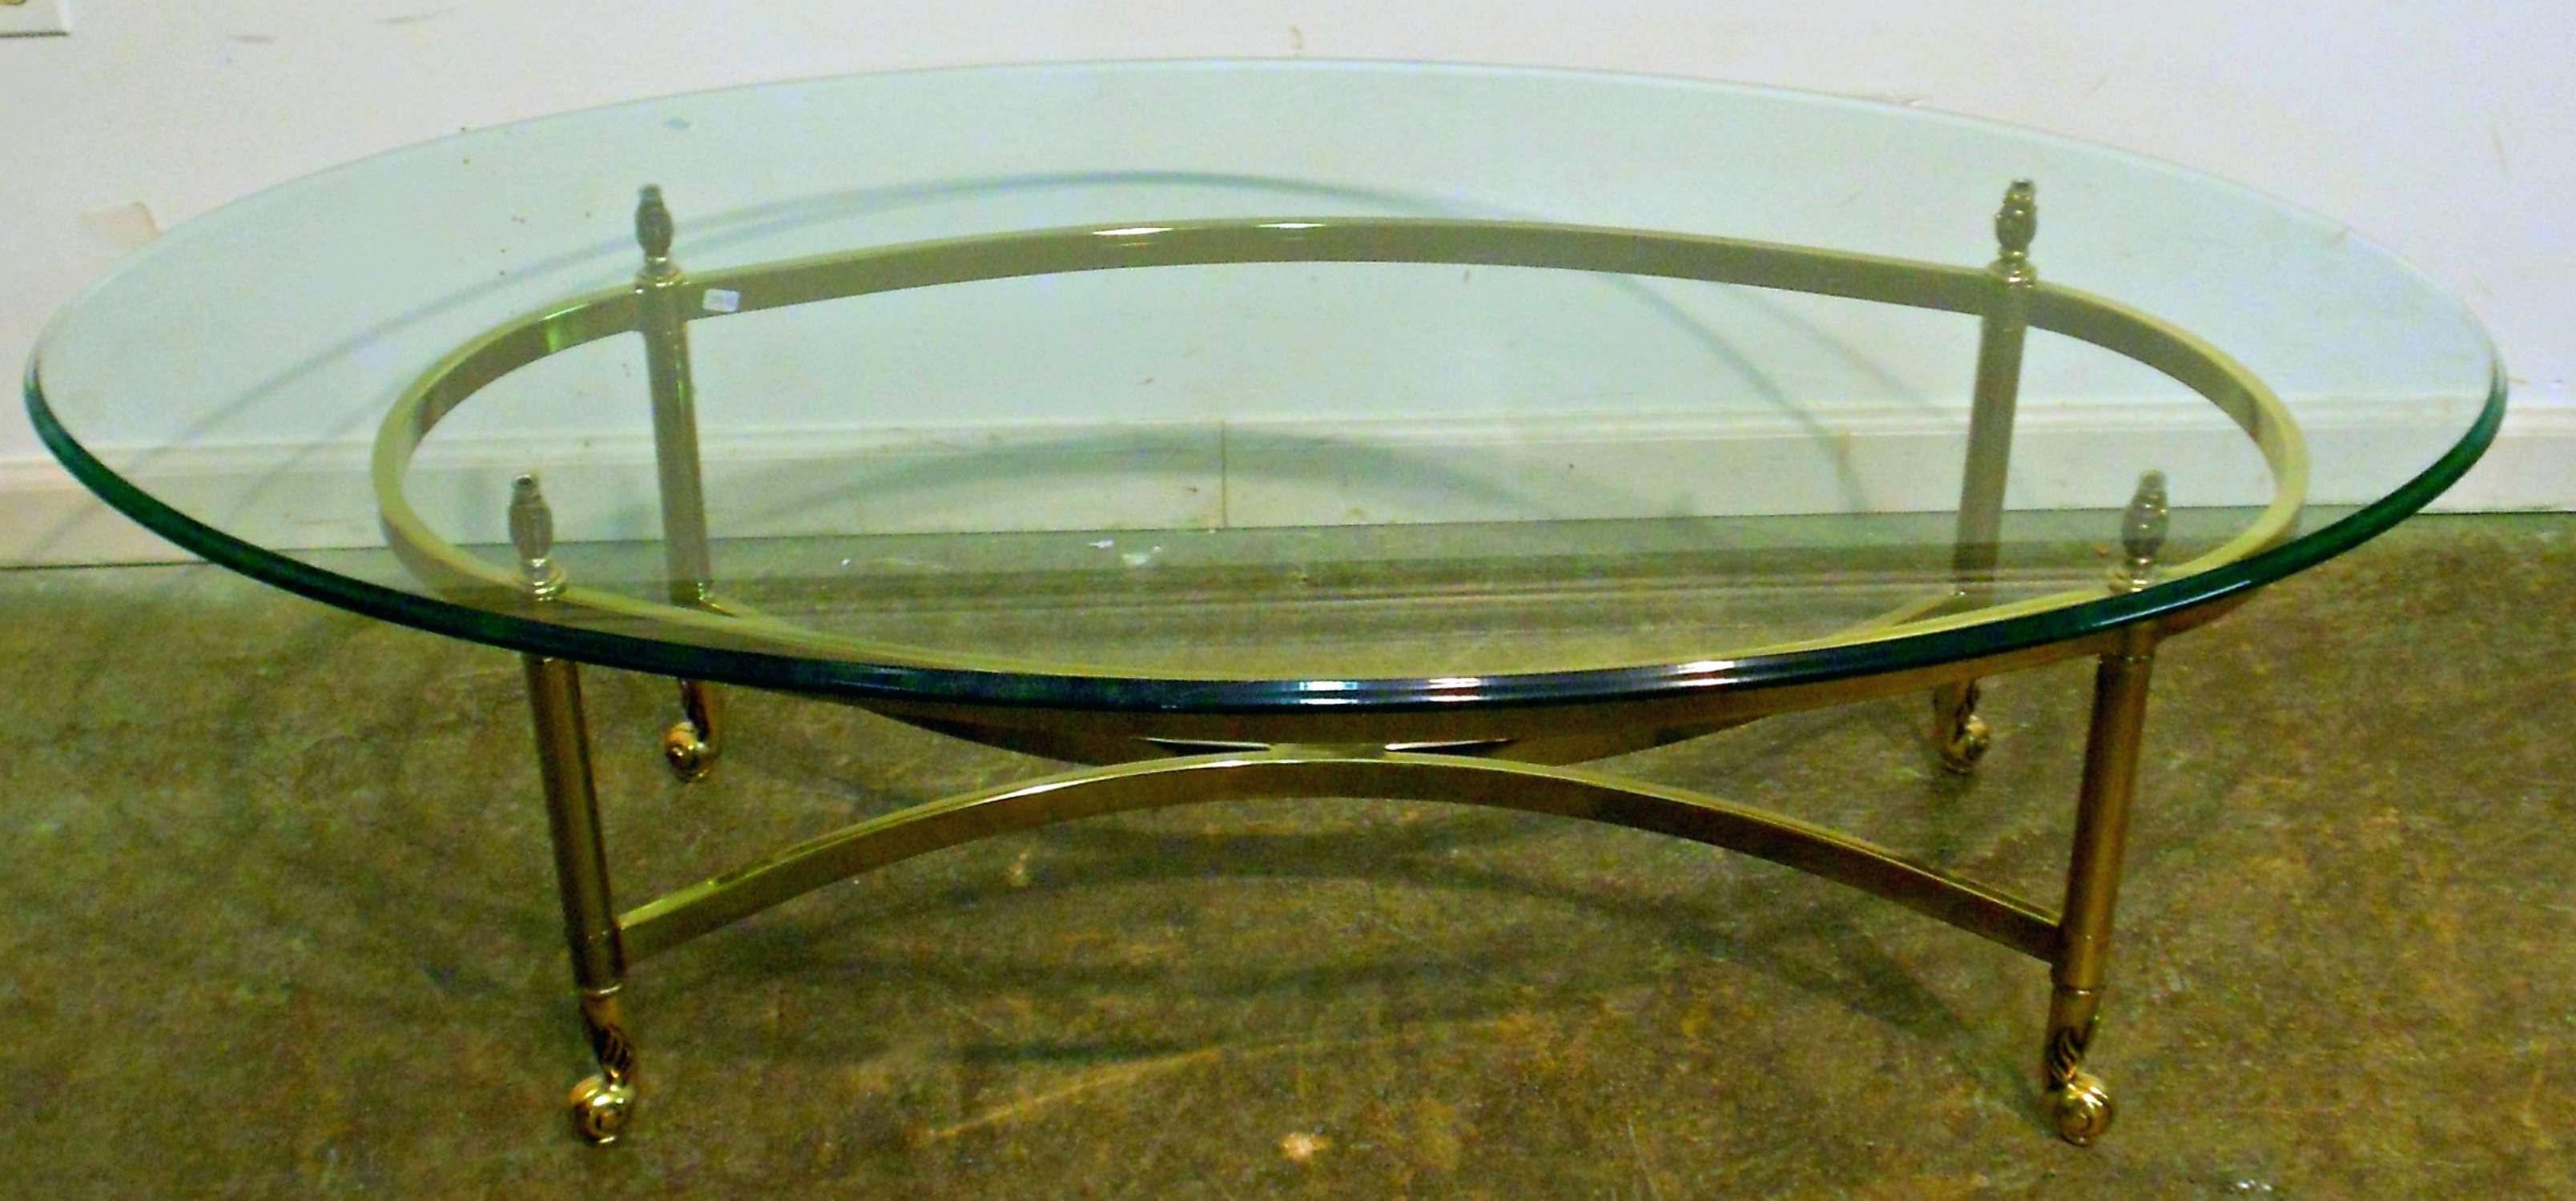 2018 Oval Shaped Glass Coffee Tables For Coffee Tables : Australia Brass And Glass Oval Coffee Table Small (View 1 of 20)